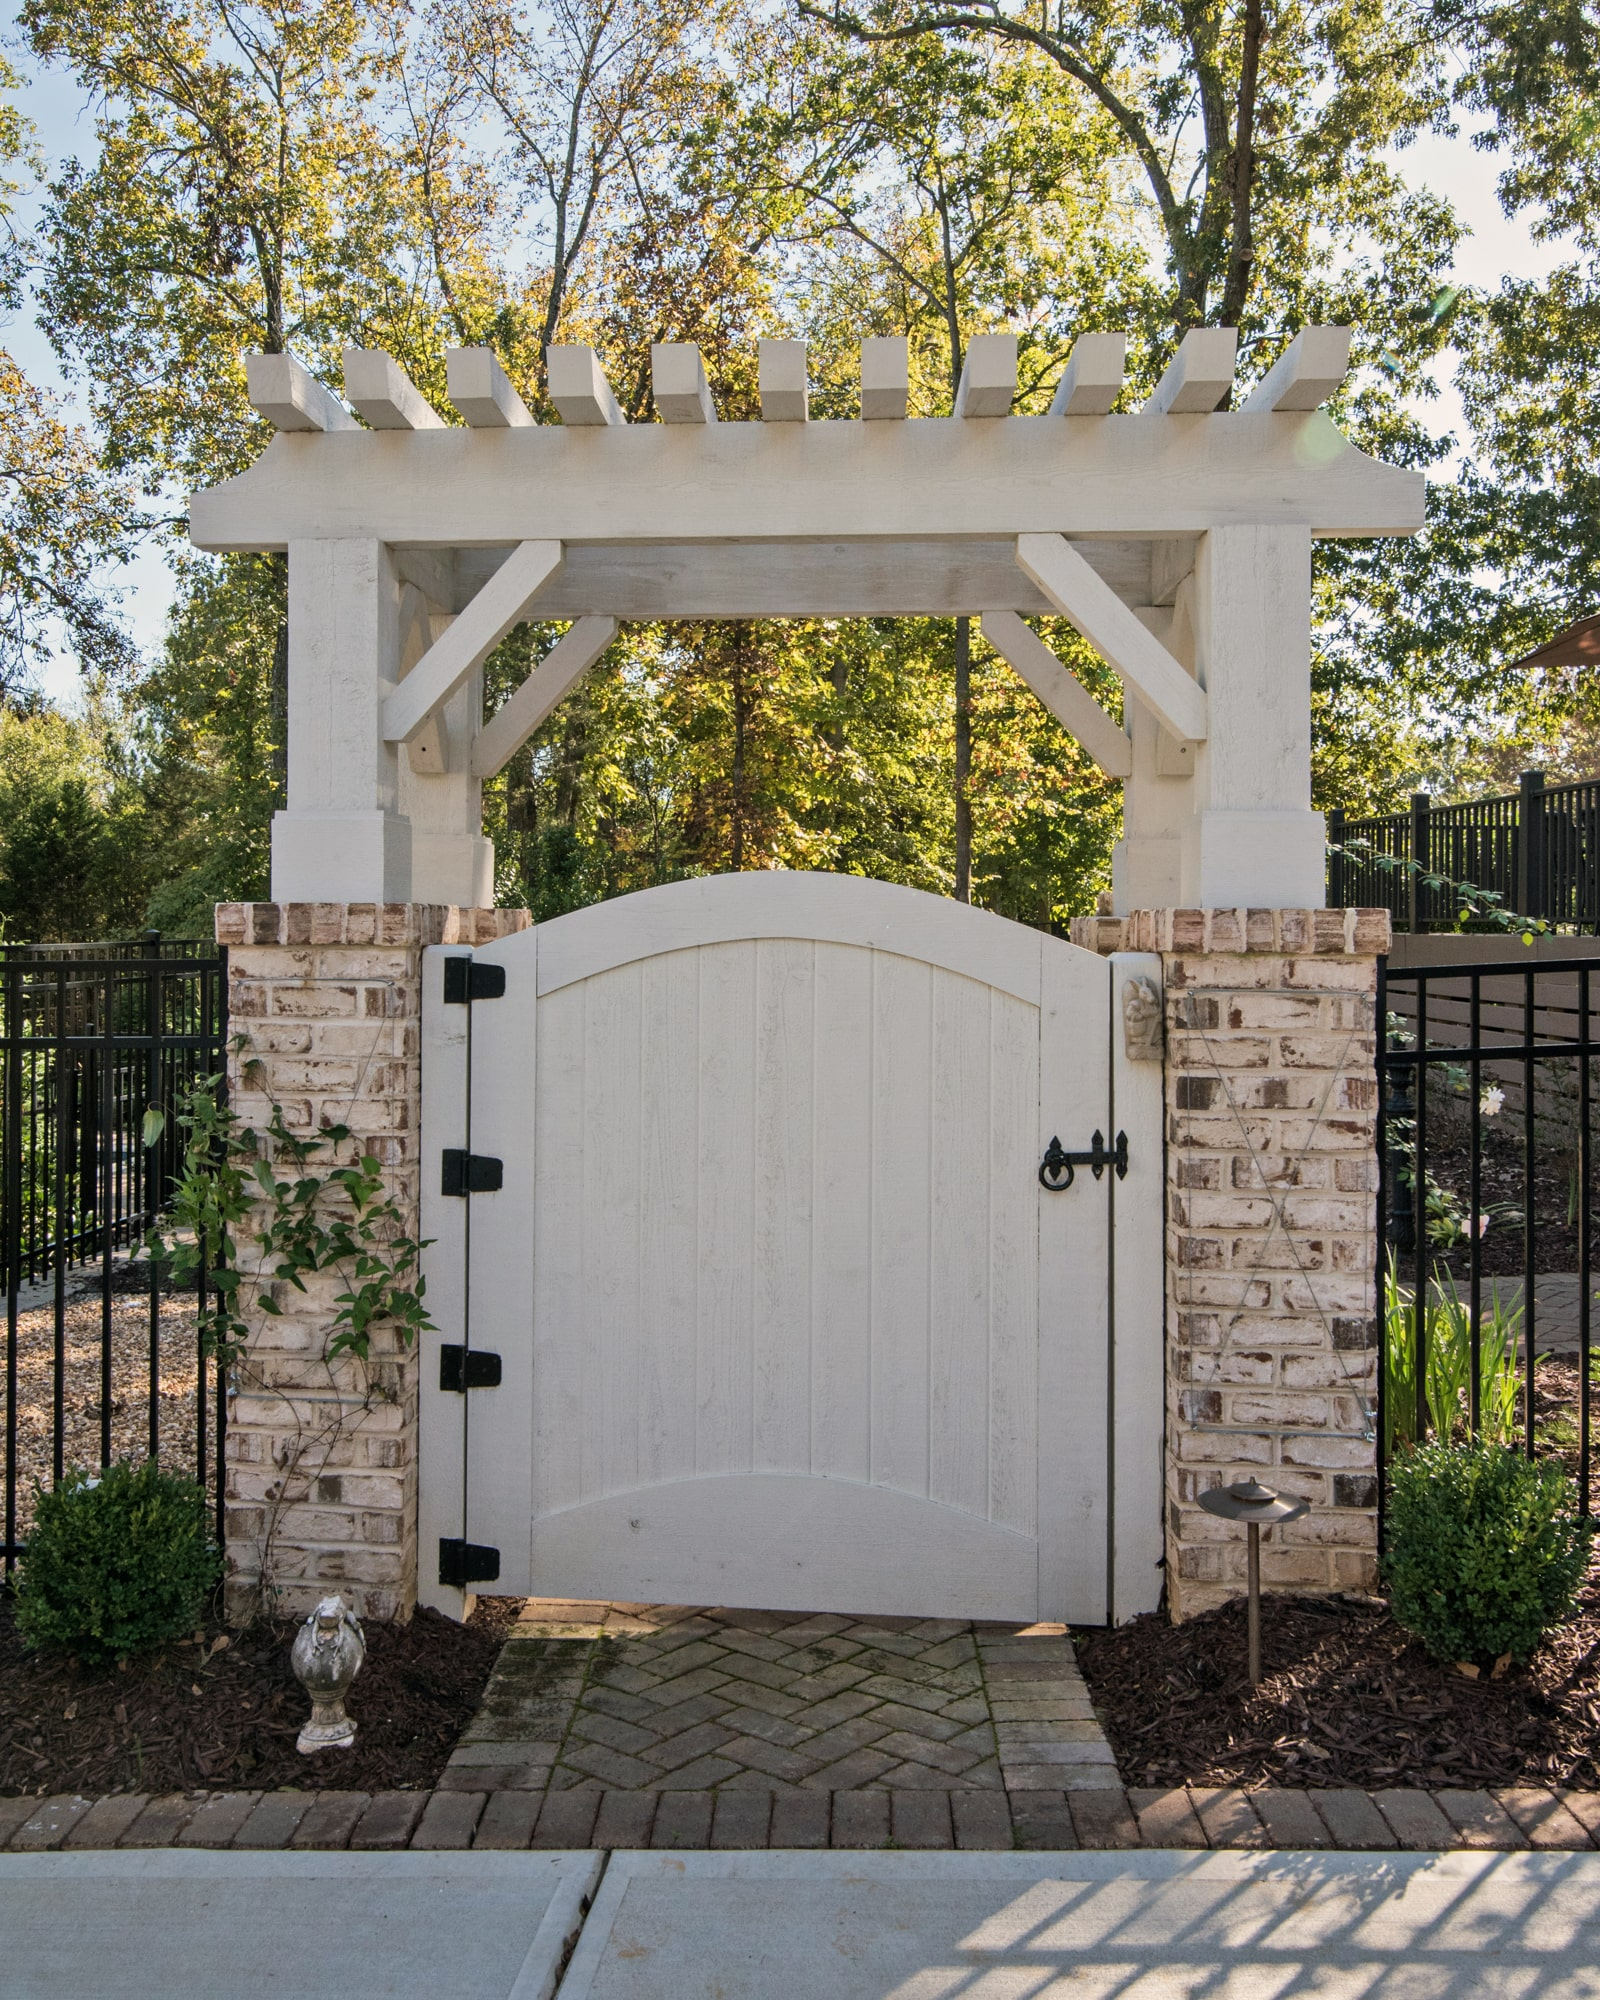 Beautiful pergola at the gate into the back hard ties in to the home and the landscaping perfectly.